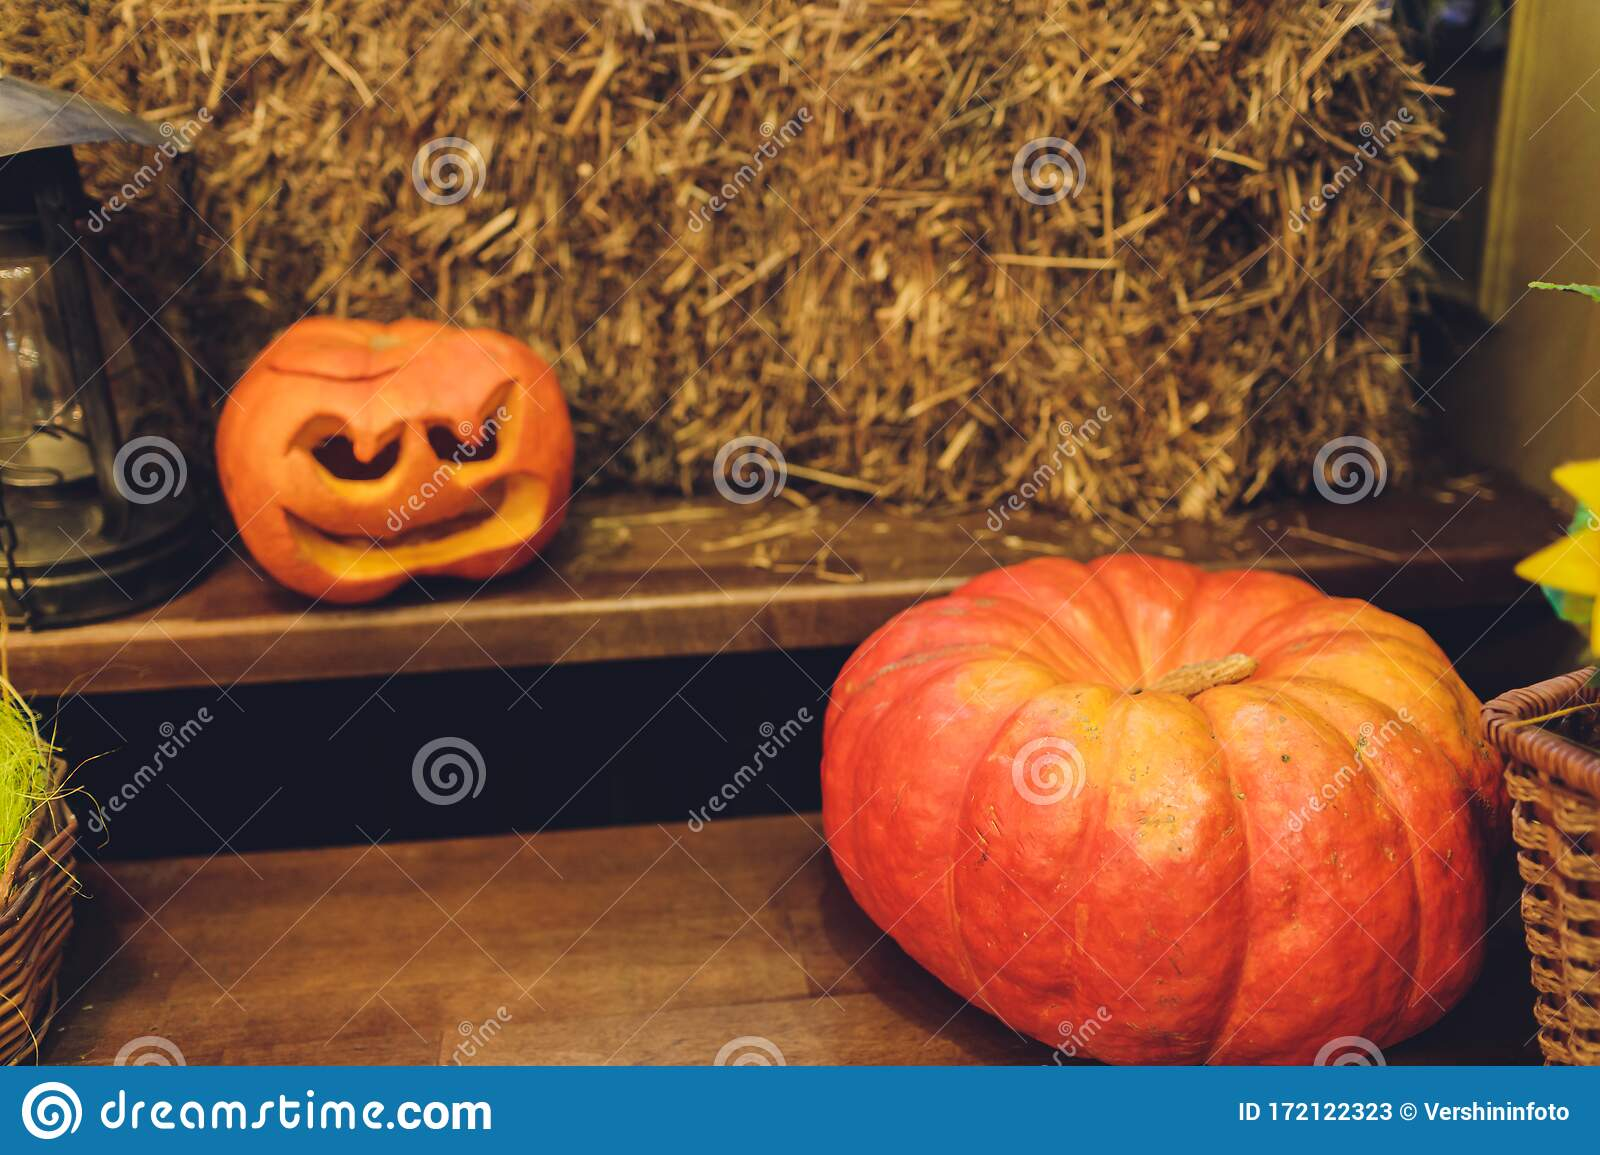 Pumpkin Squash Happy Thanksgiving Day Background Autumn Thanksgiving Pumpkins Over Wooden Background With Garland Stock Image Image Of Festival Farming 172122323